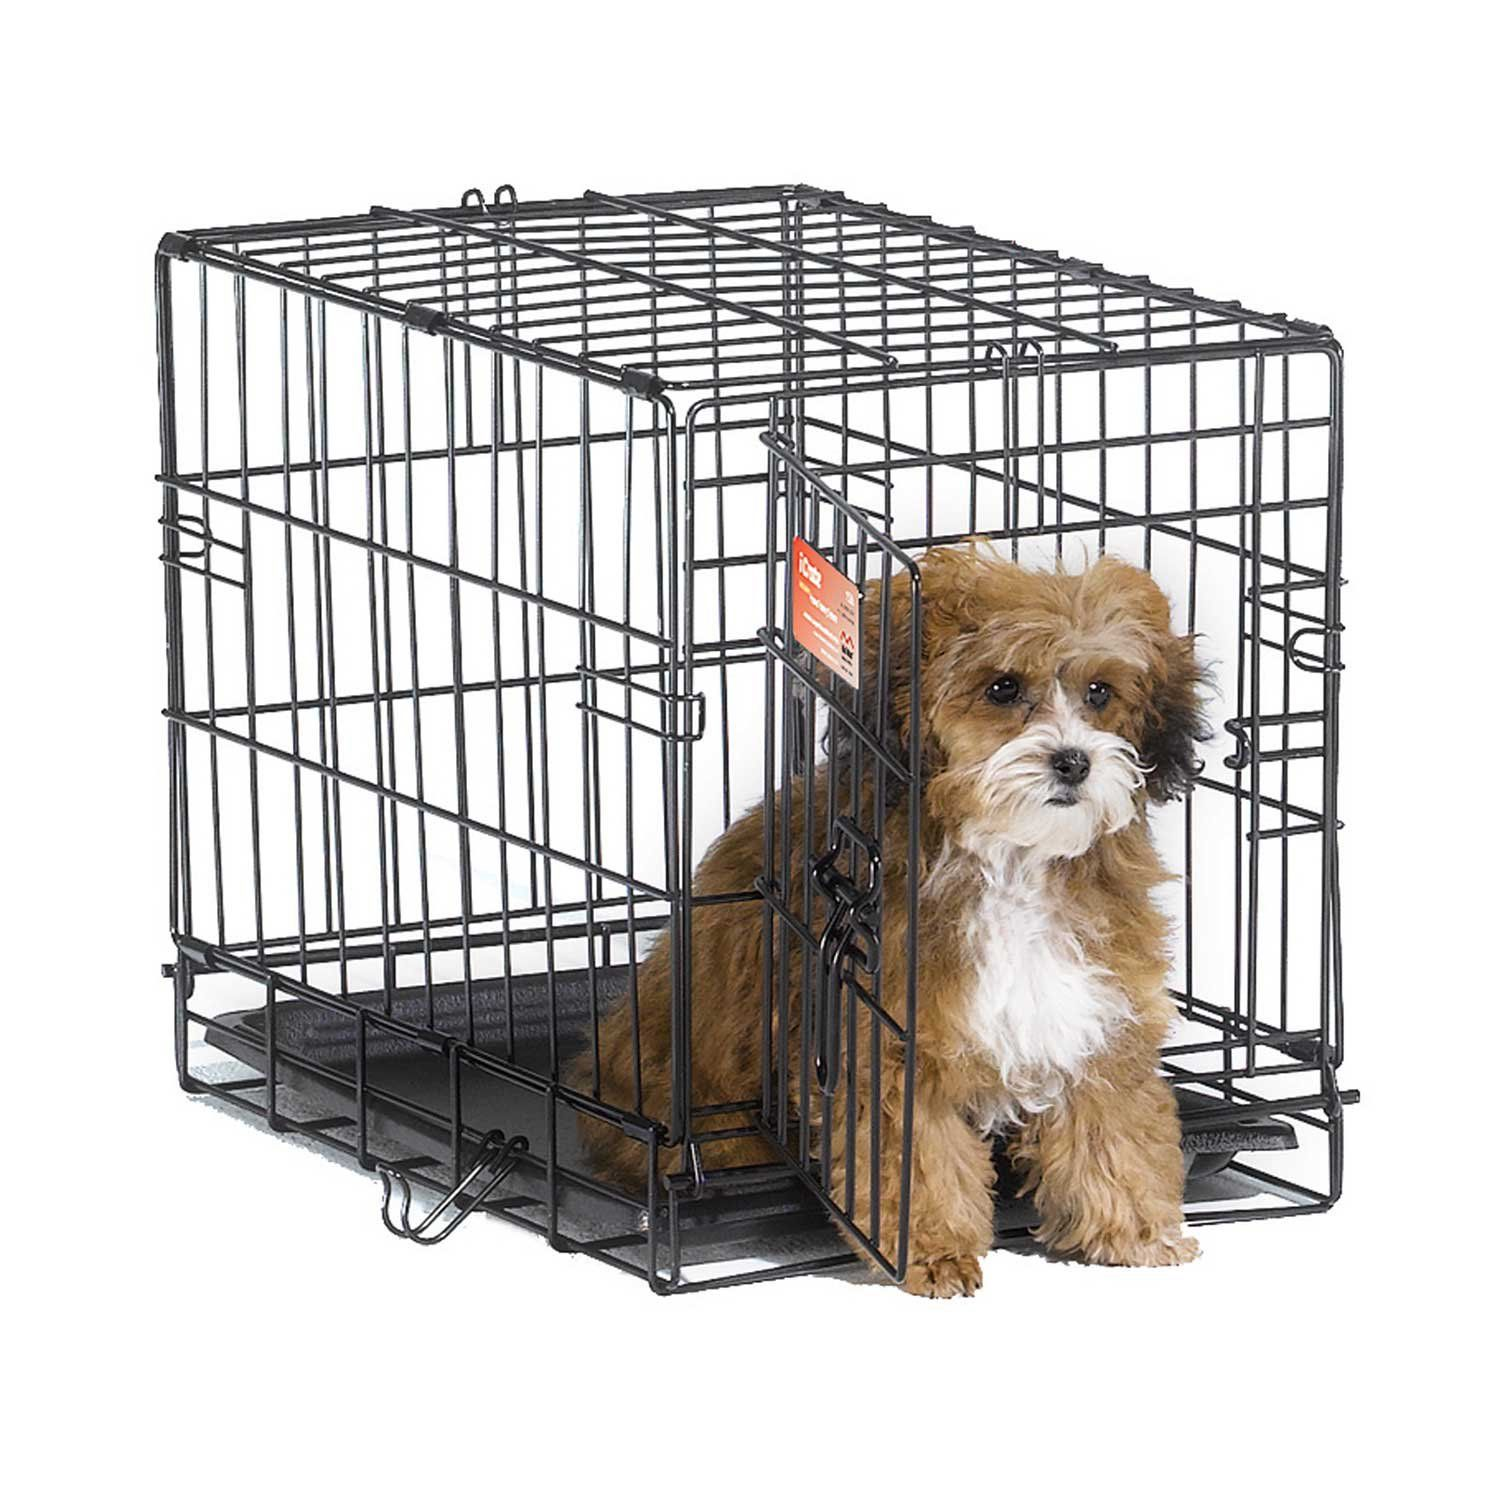 Midwest Icrate Single Door Folding Dog Crate 36 L X 23 W X 25 H Cheap Dog Cages Small Dog Cage Folding Dog Crate